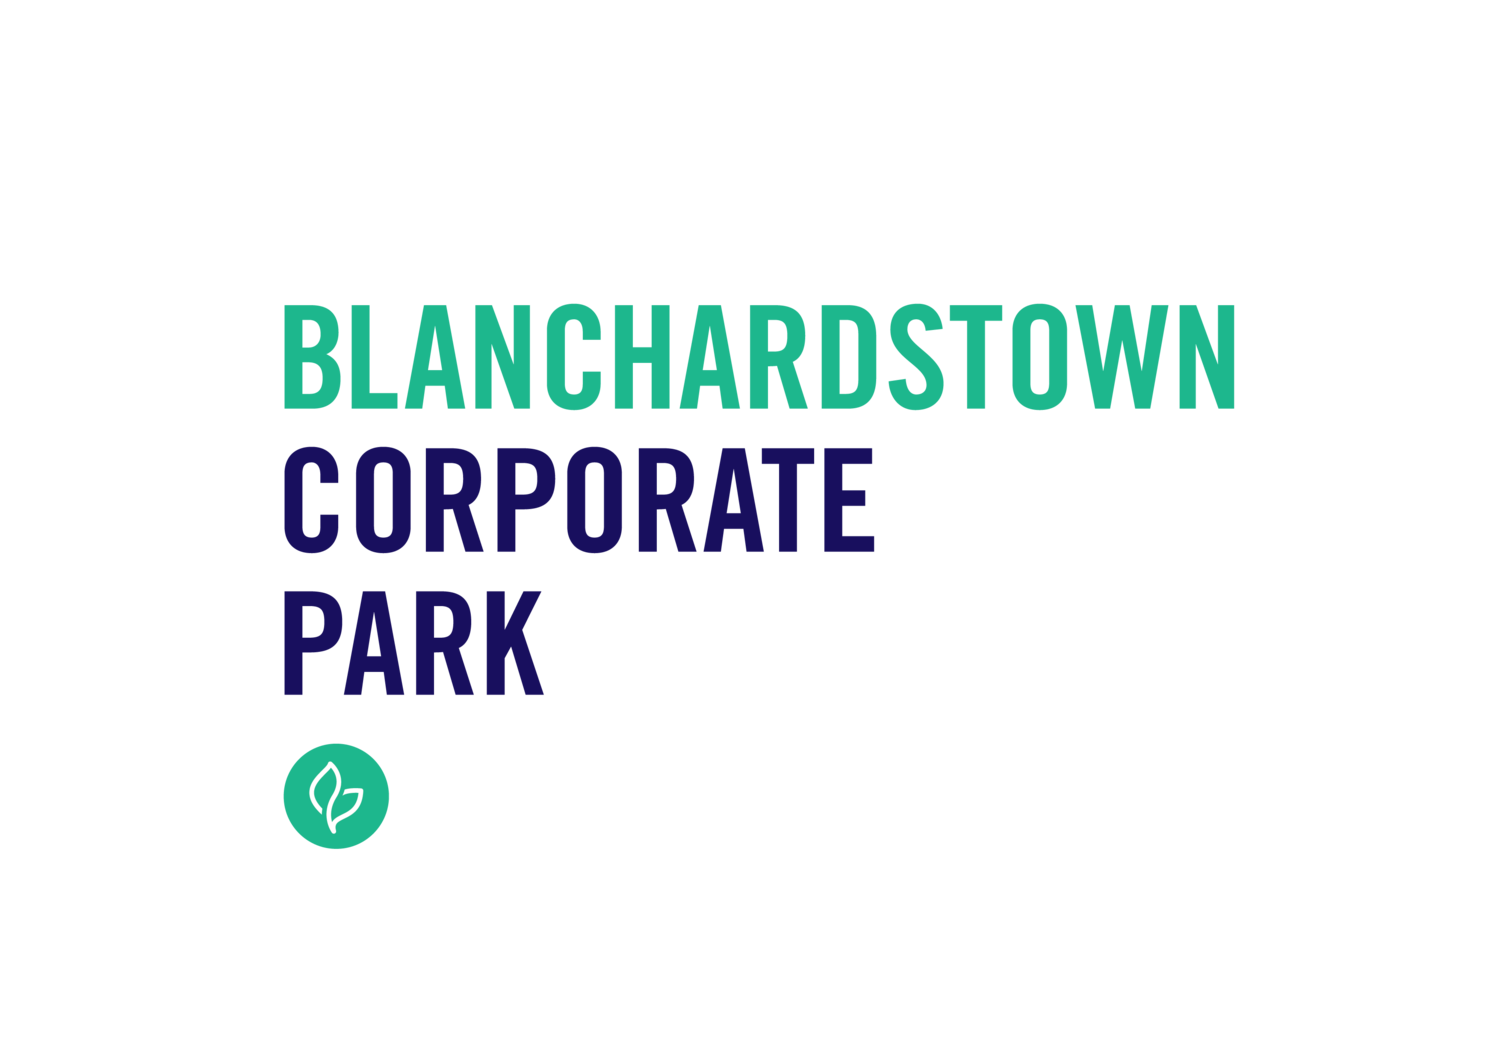 Blanchardstown Corporate Park